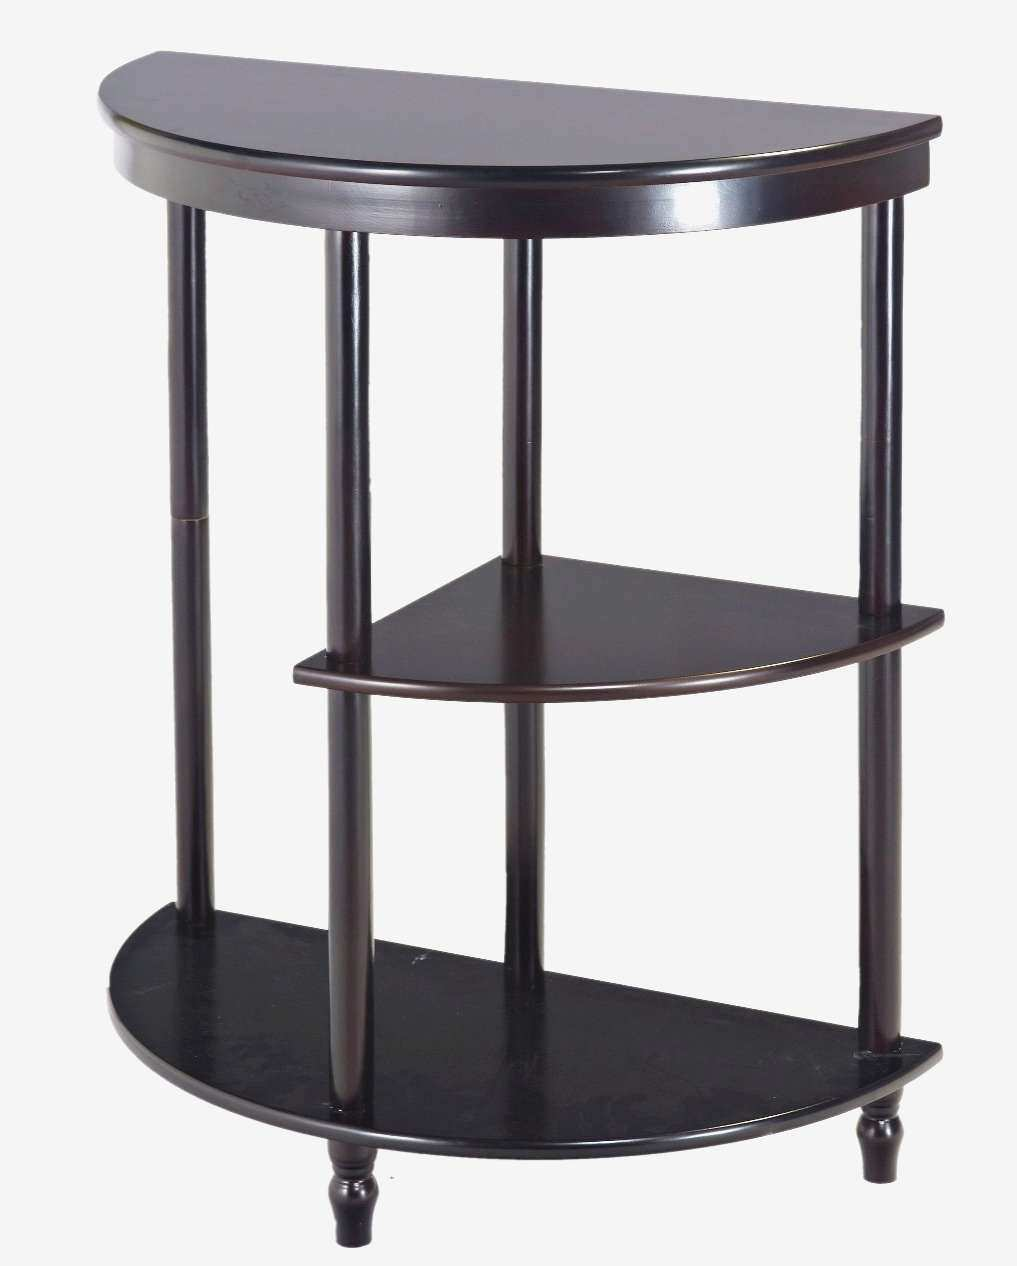 half moon accent tables incredible frenchi furniture cherry tier crescent graph white table round glass metal coffee patio with umbrella hole zebra solid oak hobby lobby end